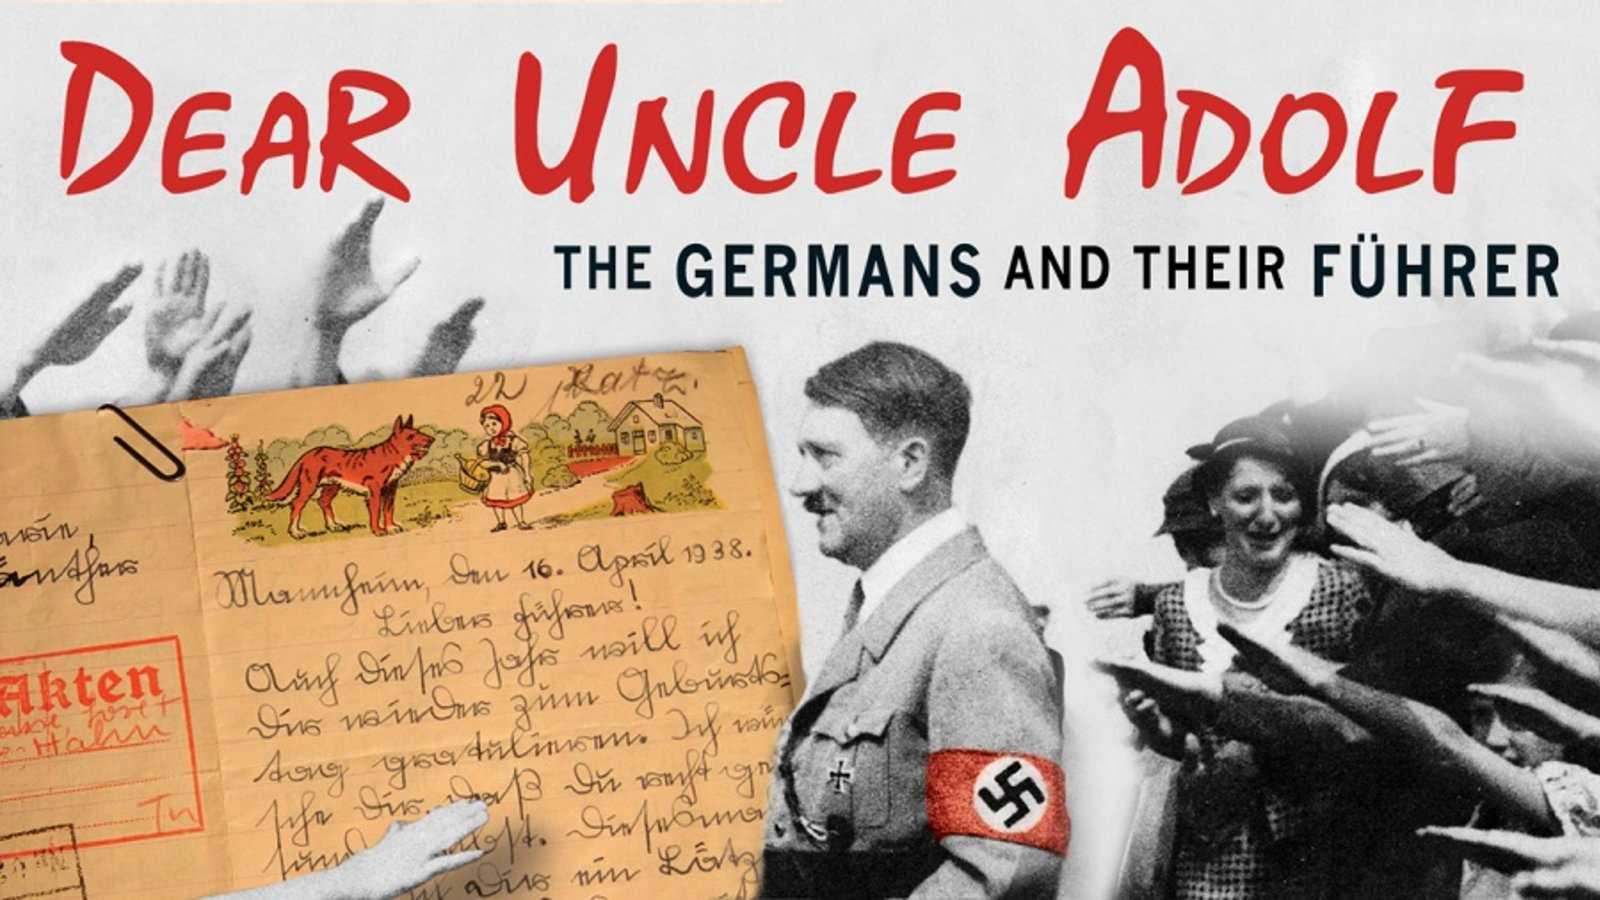 Dear Uncle Adolf: The Germans and Their Fuhrer